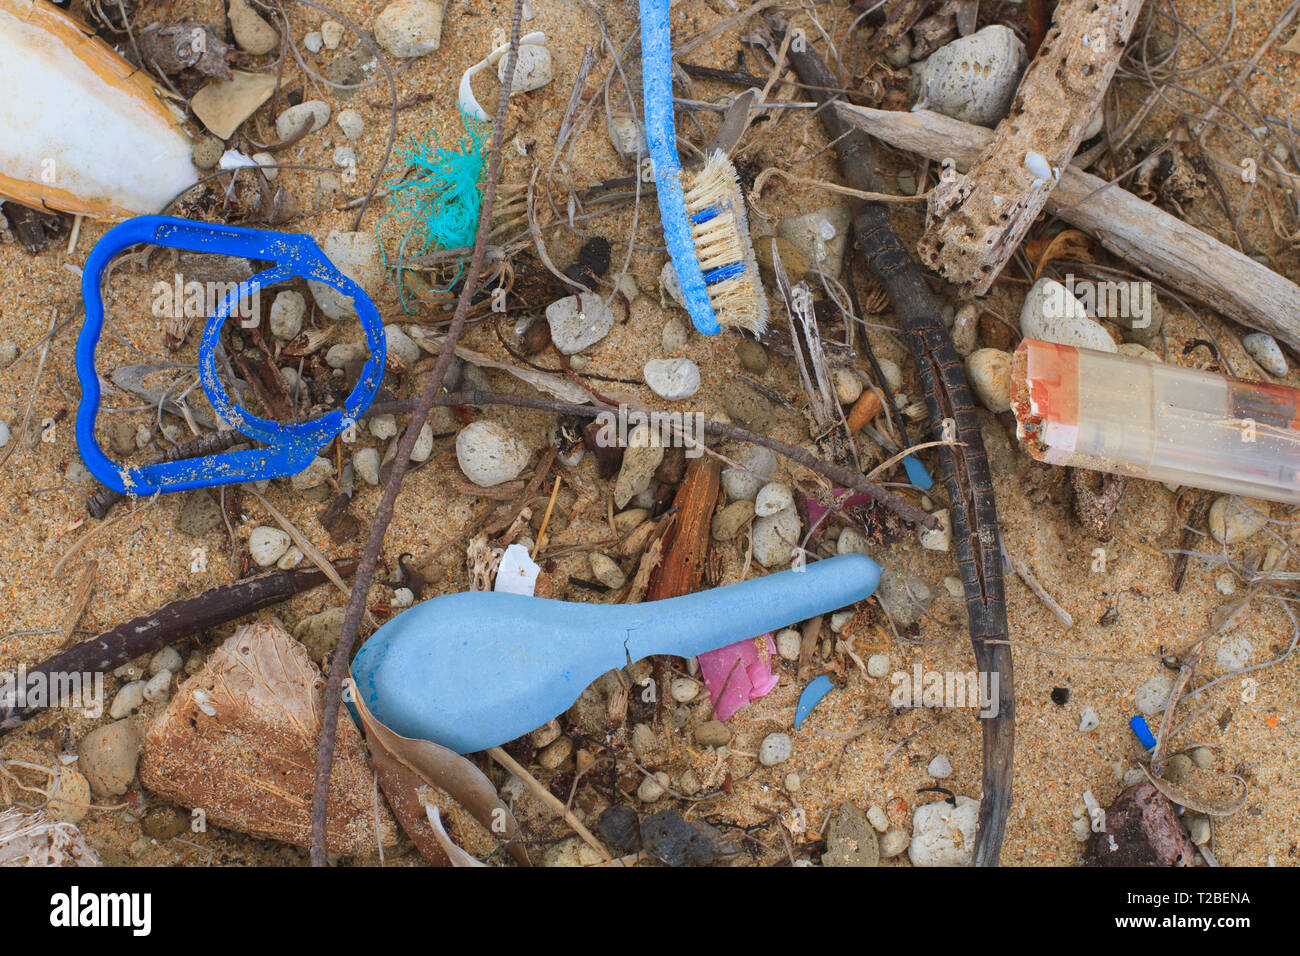 Pieces of plastic thrown from fishing vessels operating in Australian northern waters washed up on a beach on the west coast of Cape York, Australia.  - Stock Image